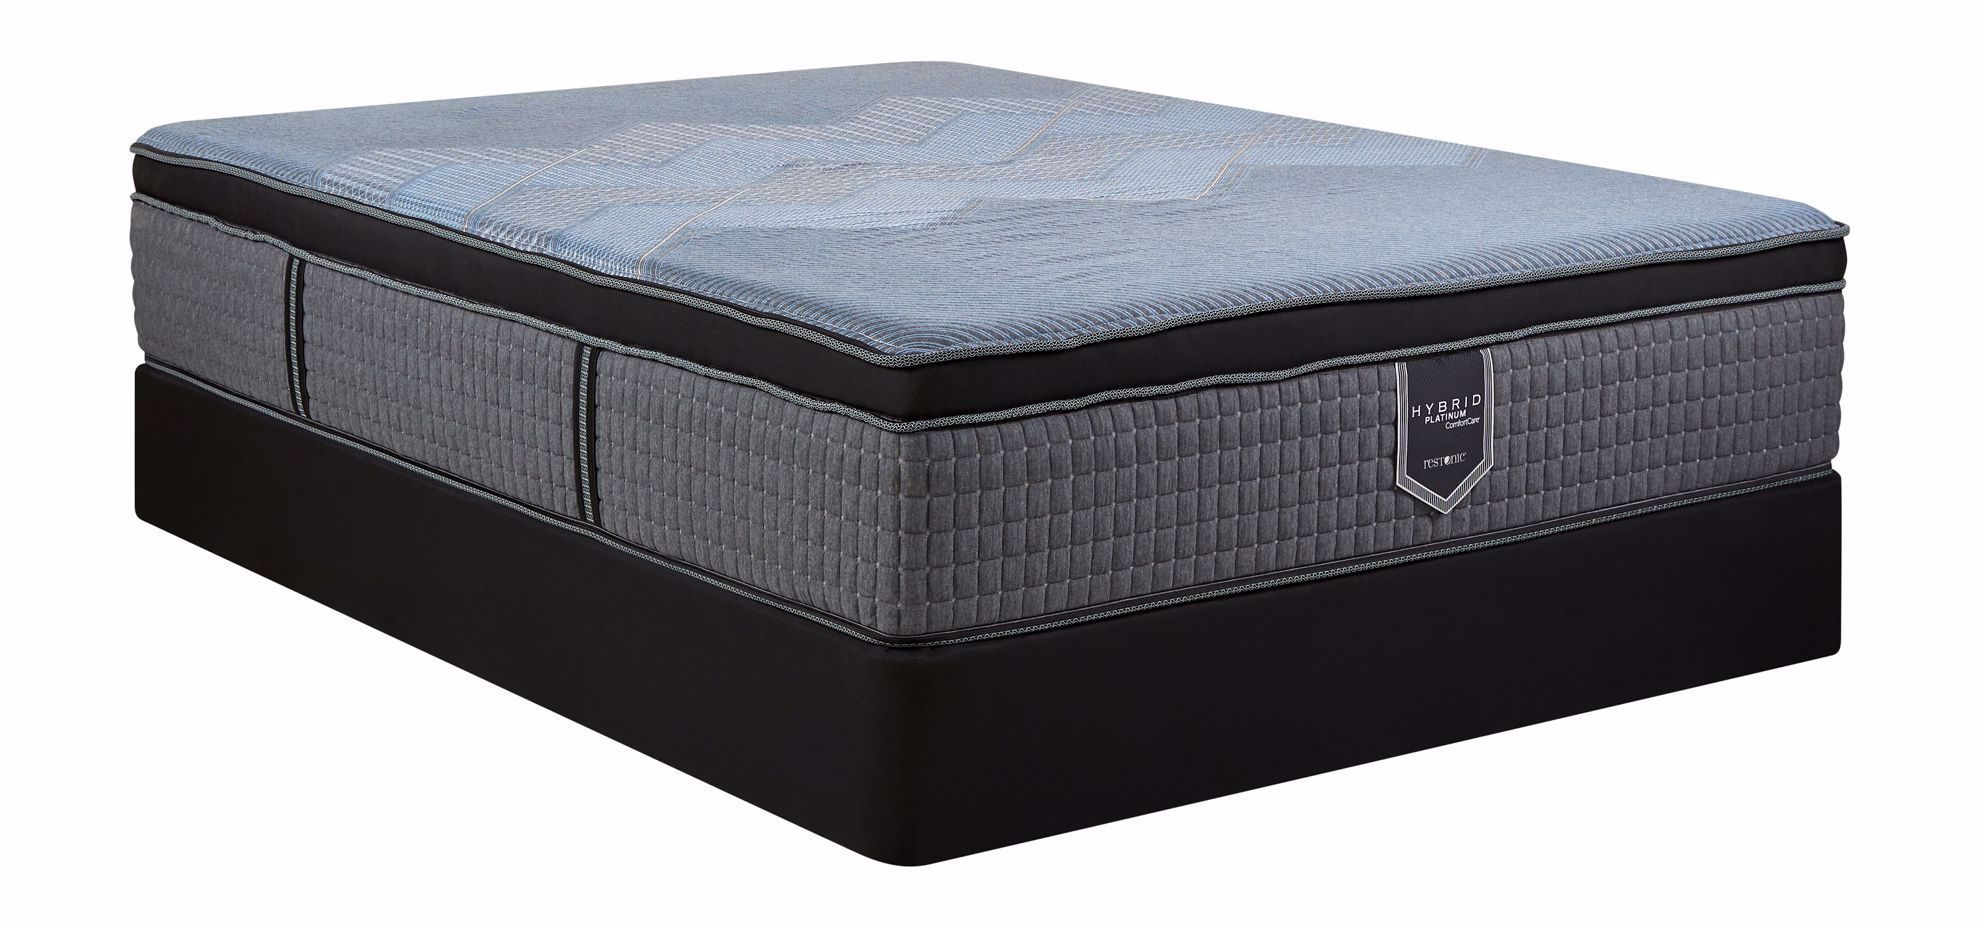 Picture of Restonic Endure Firm EuroTop King Mattress Set